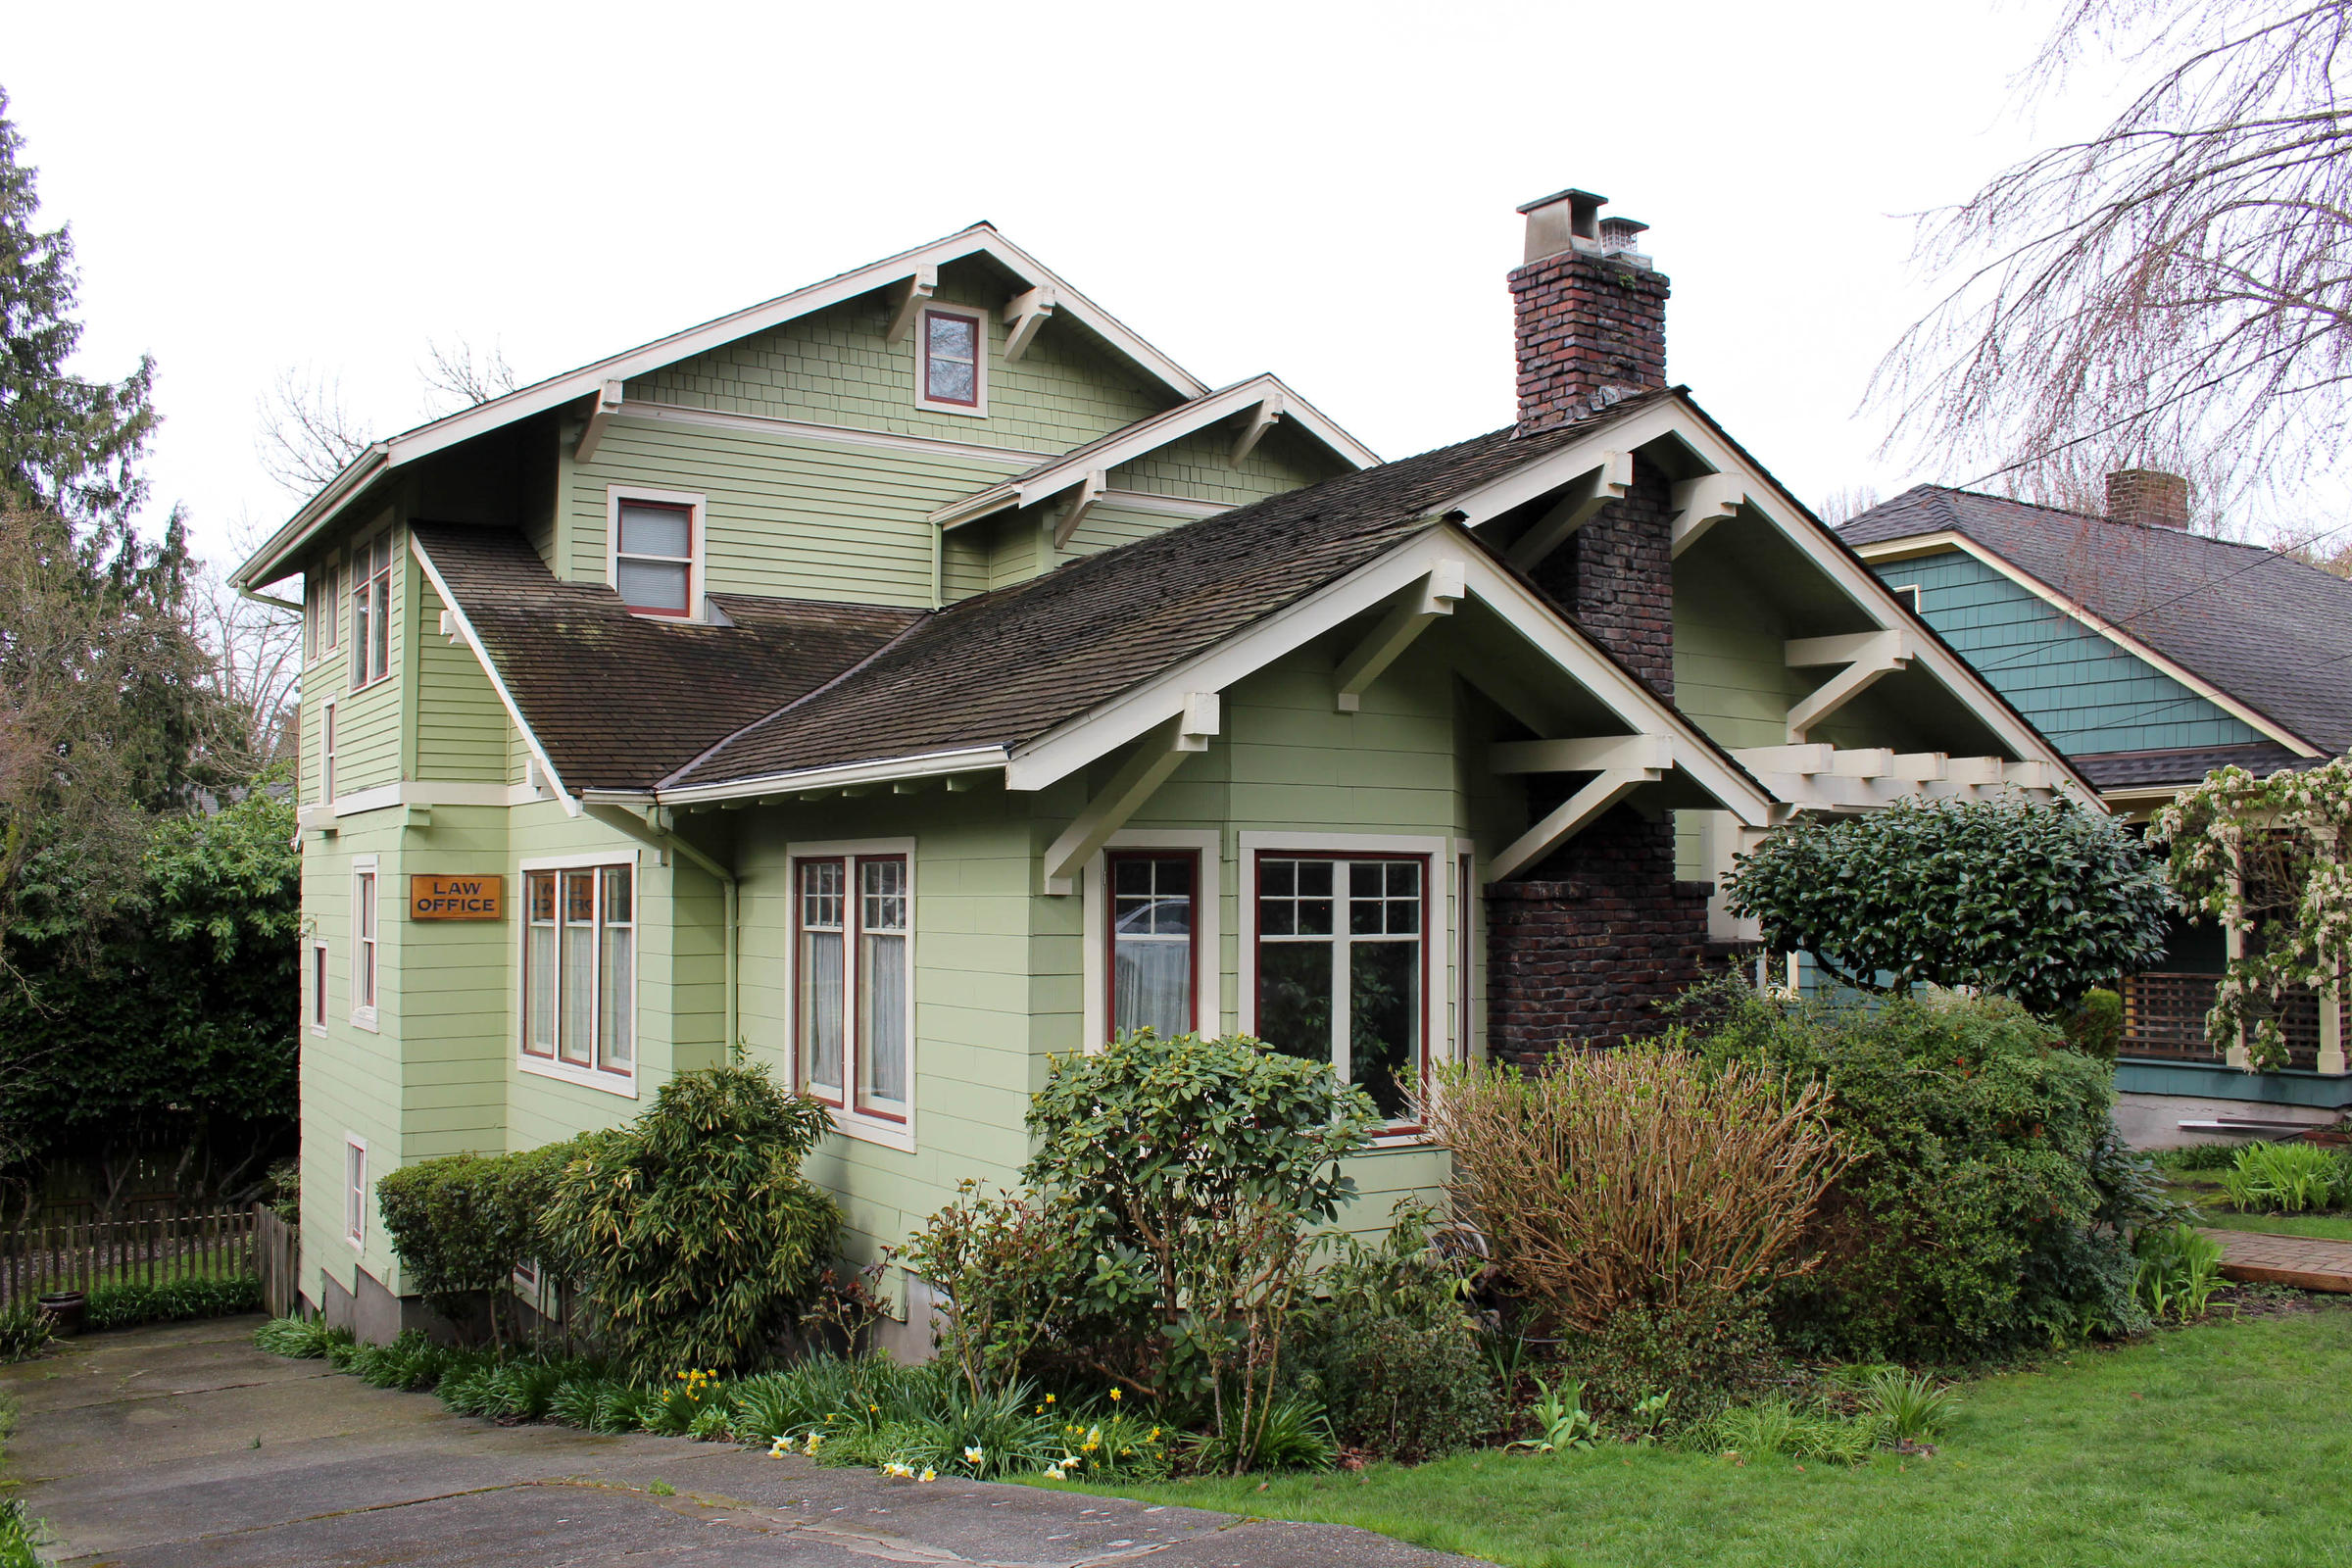 Enjoyable The Story Behind Seattles Obsession With Craftsman Homes Download Free Architecture Designs Grimeyleaguecom